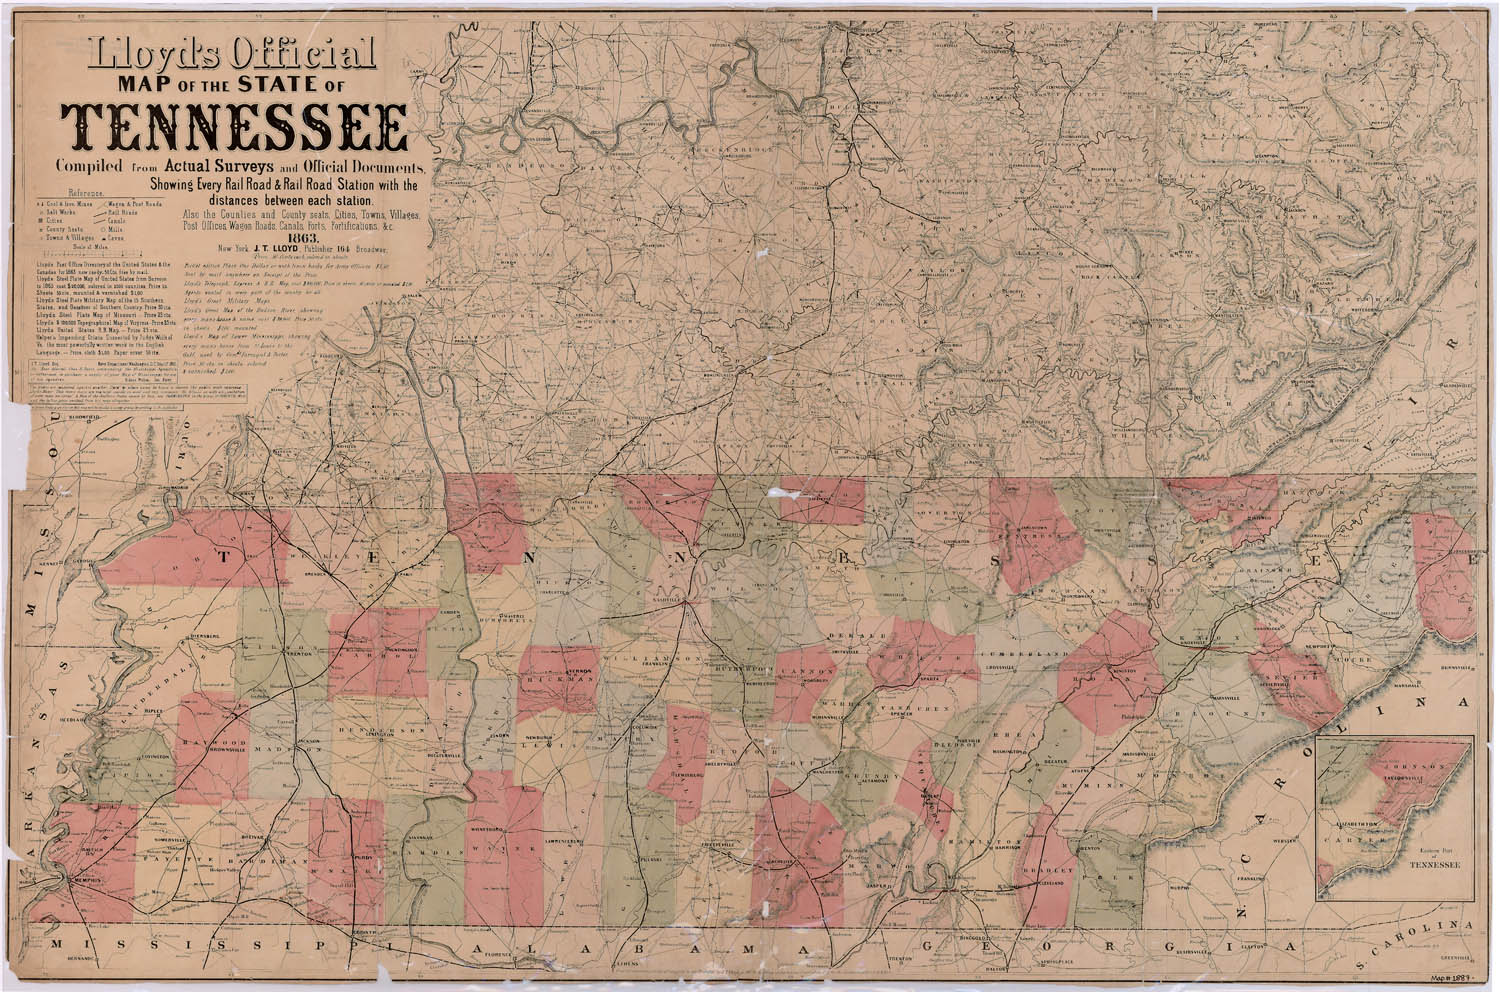 Map Of Tennessee Shades Of Gray And Blue - Map of the state of tennessee